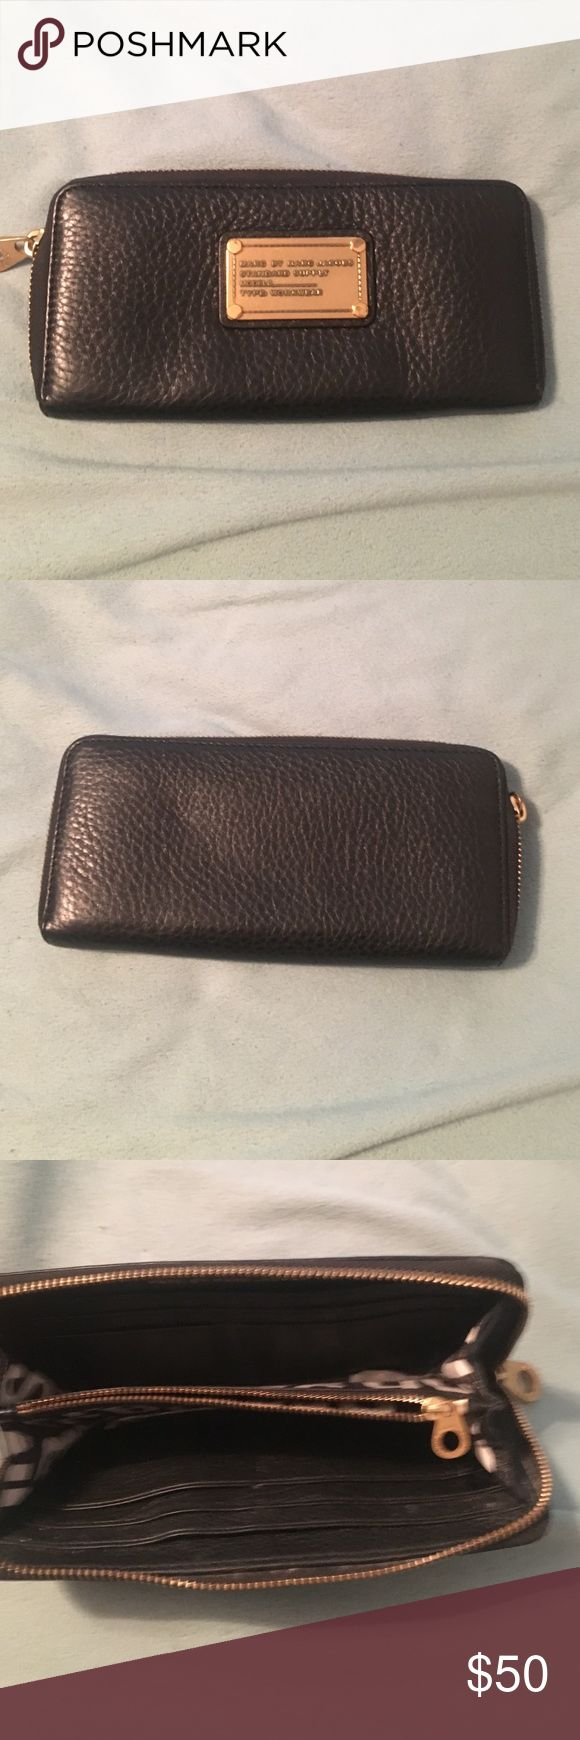 Marc Jacobs wallet Black Marc jacobs wallet with gold plaque Marc by Marc Jacobs Bags Wallets